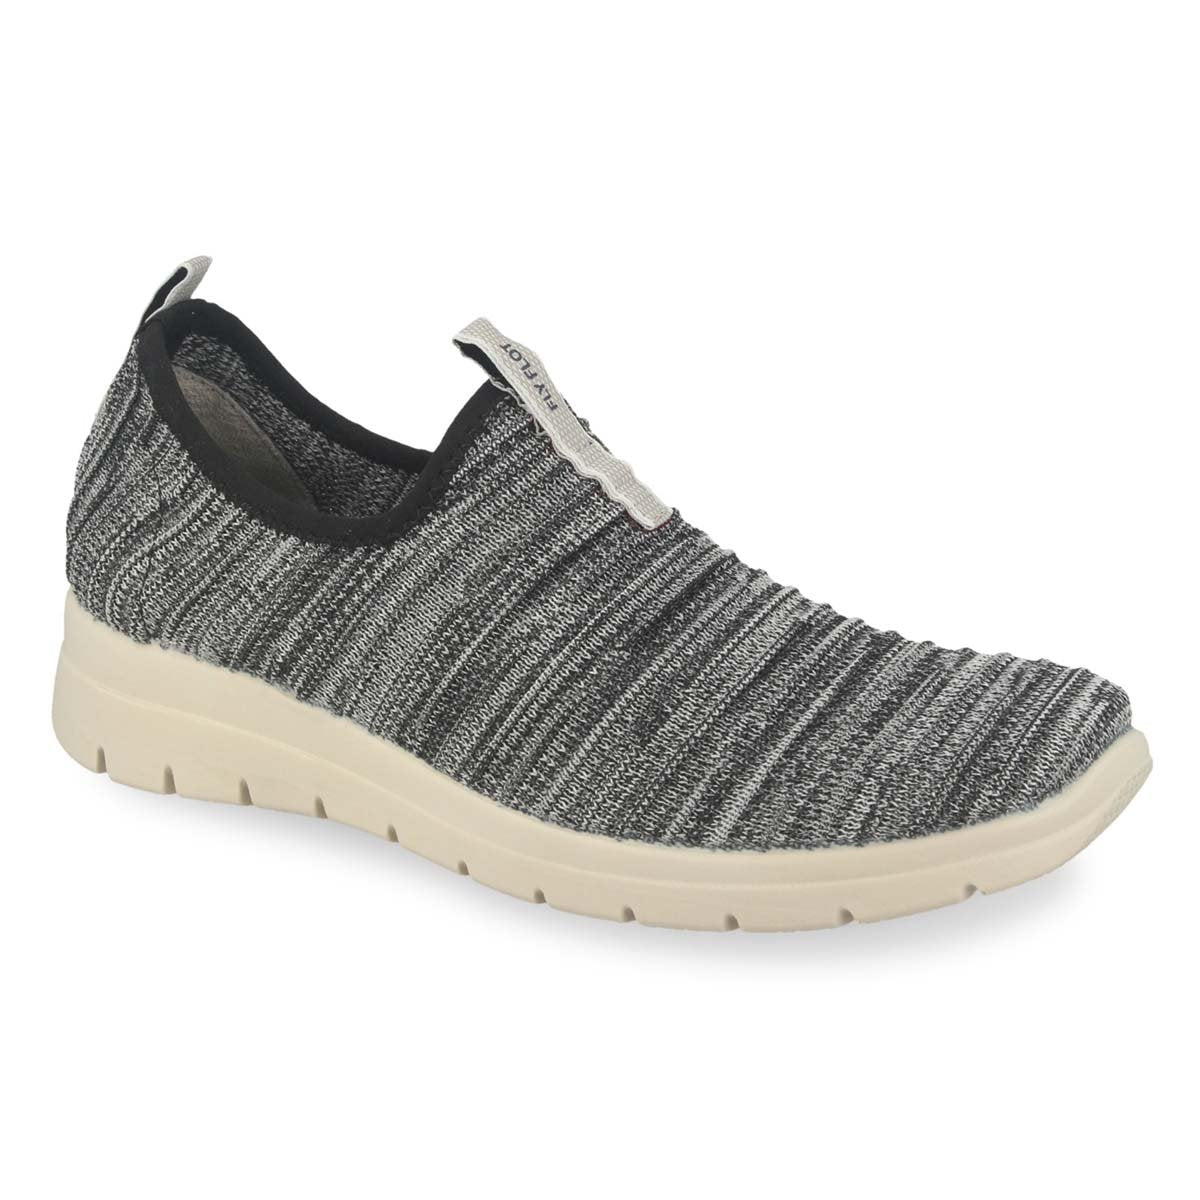 Photo of the Cloth Woman Shoe Grey (27f02nq)